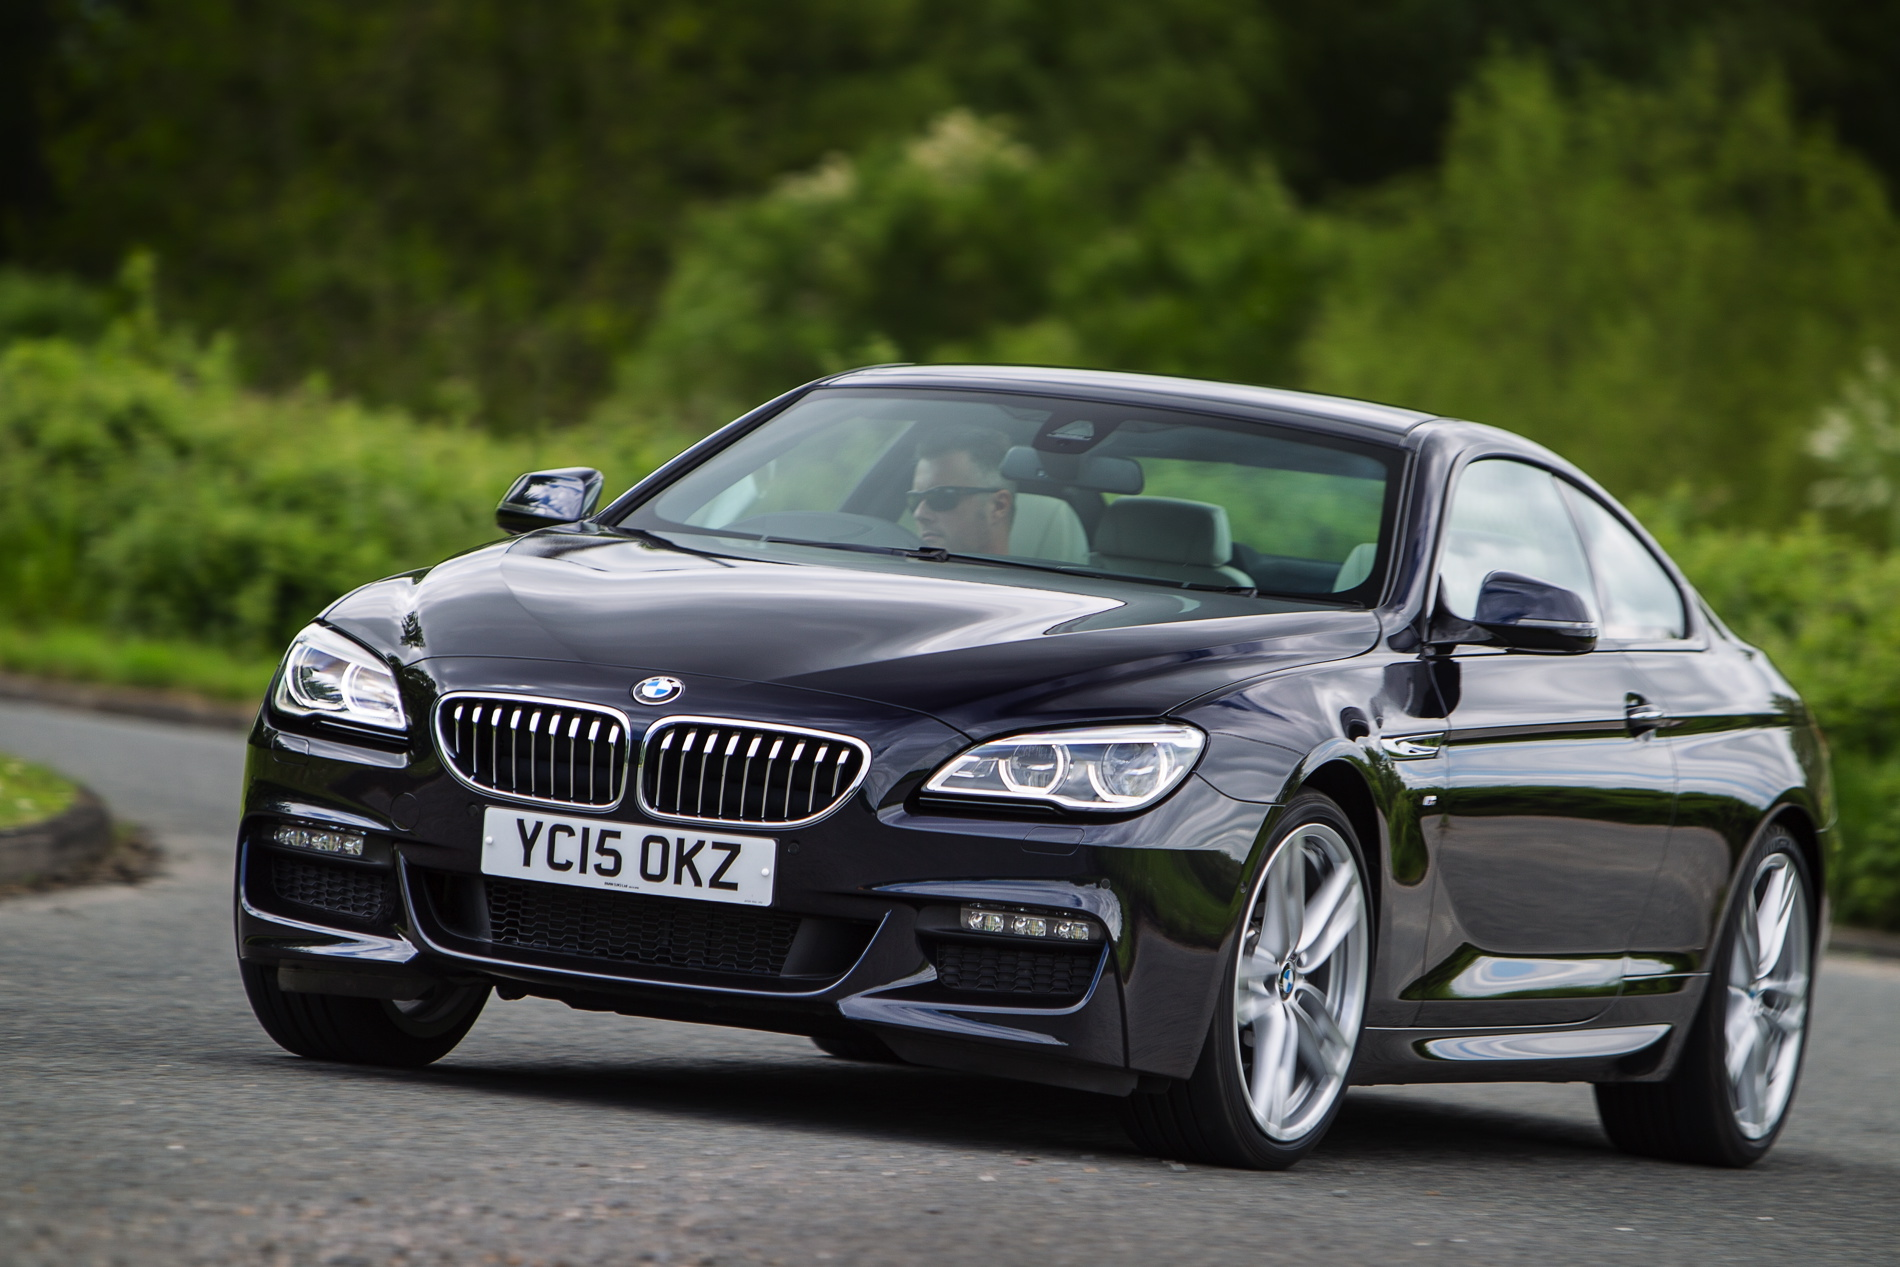 Ranking The Best Looking BMW 6 Series Coupes